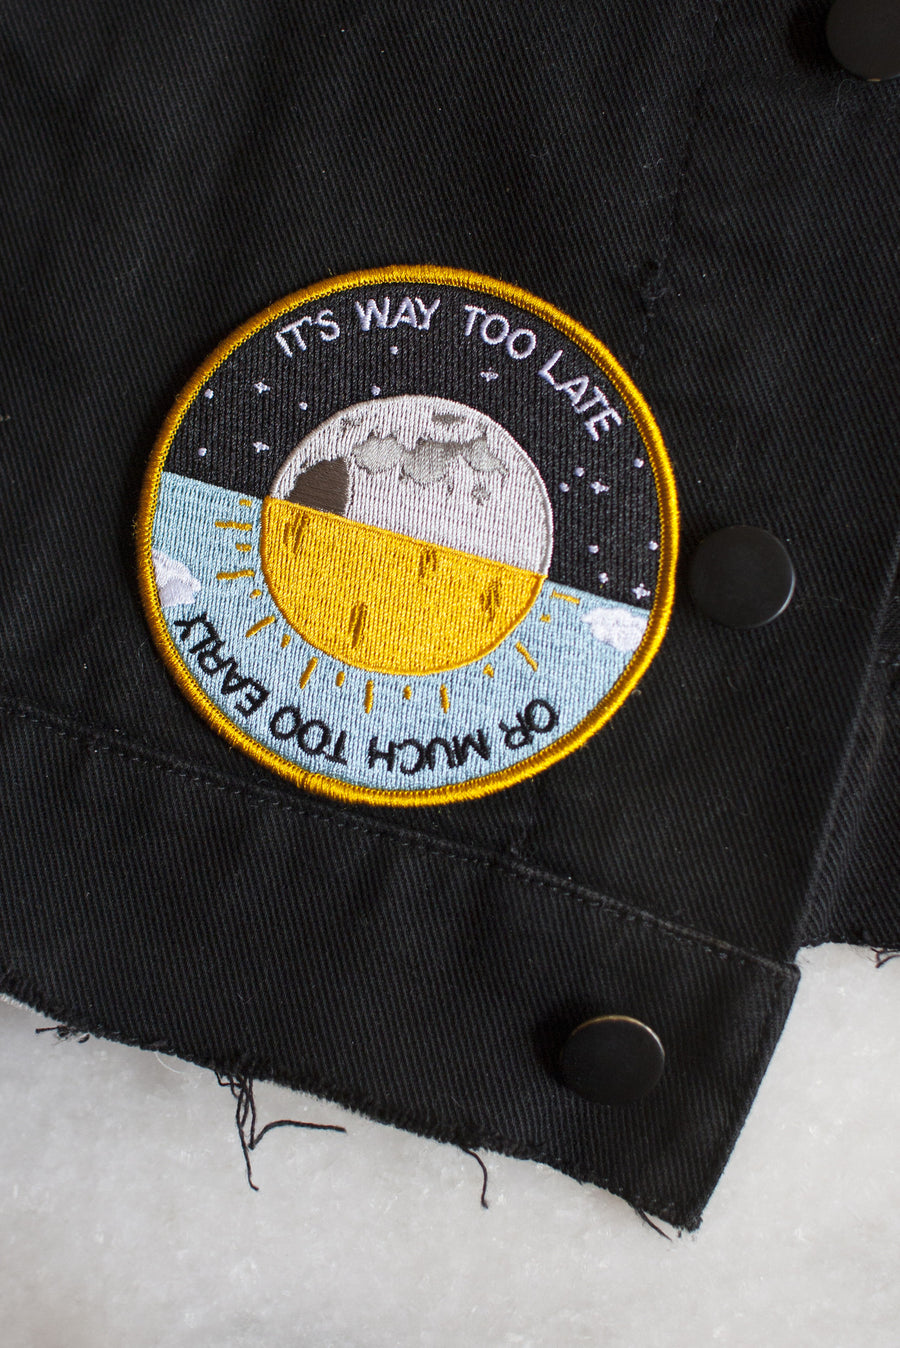 Way Too Late iron-on patch